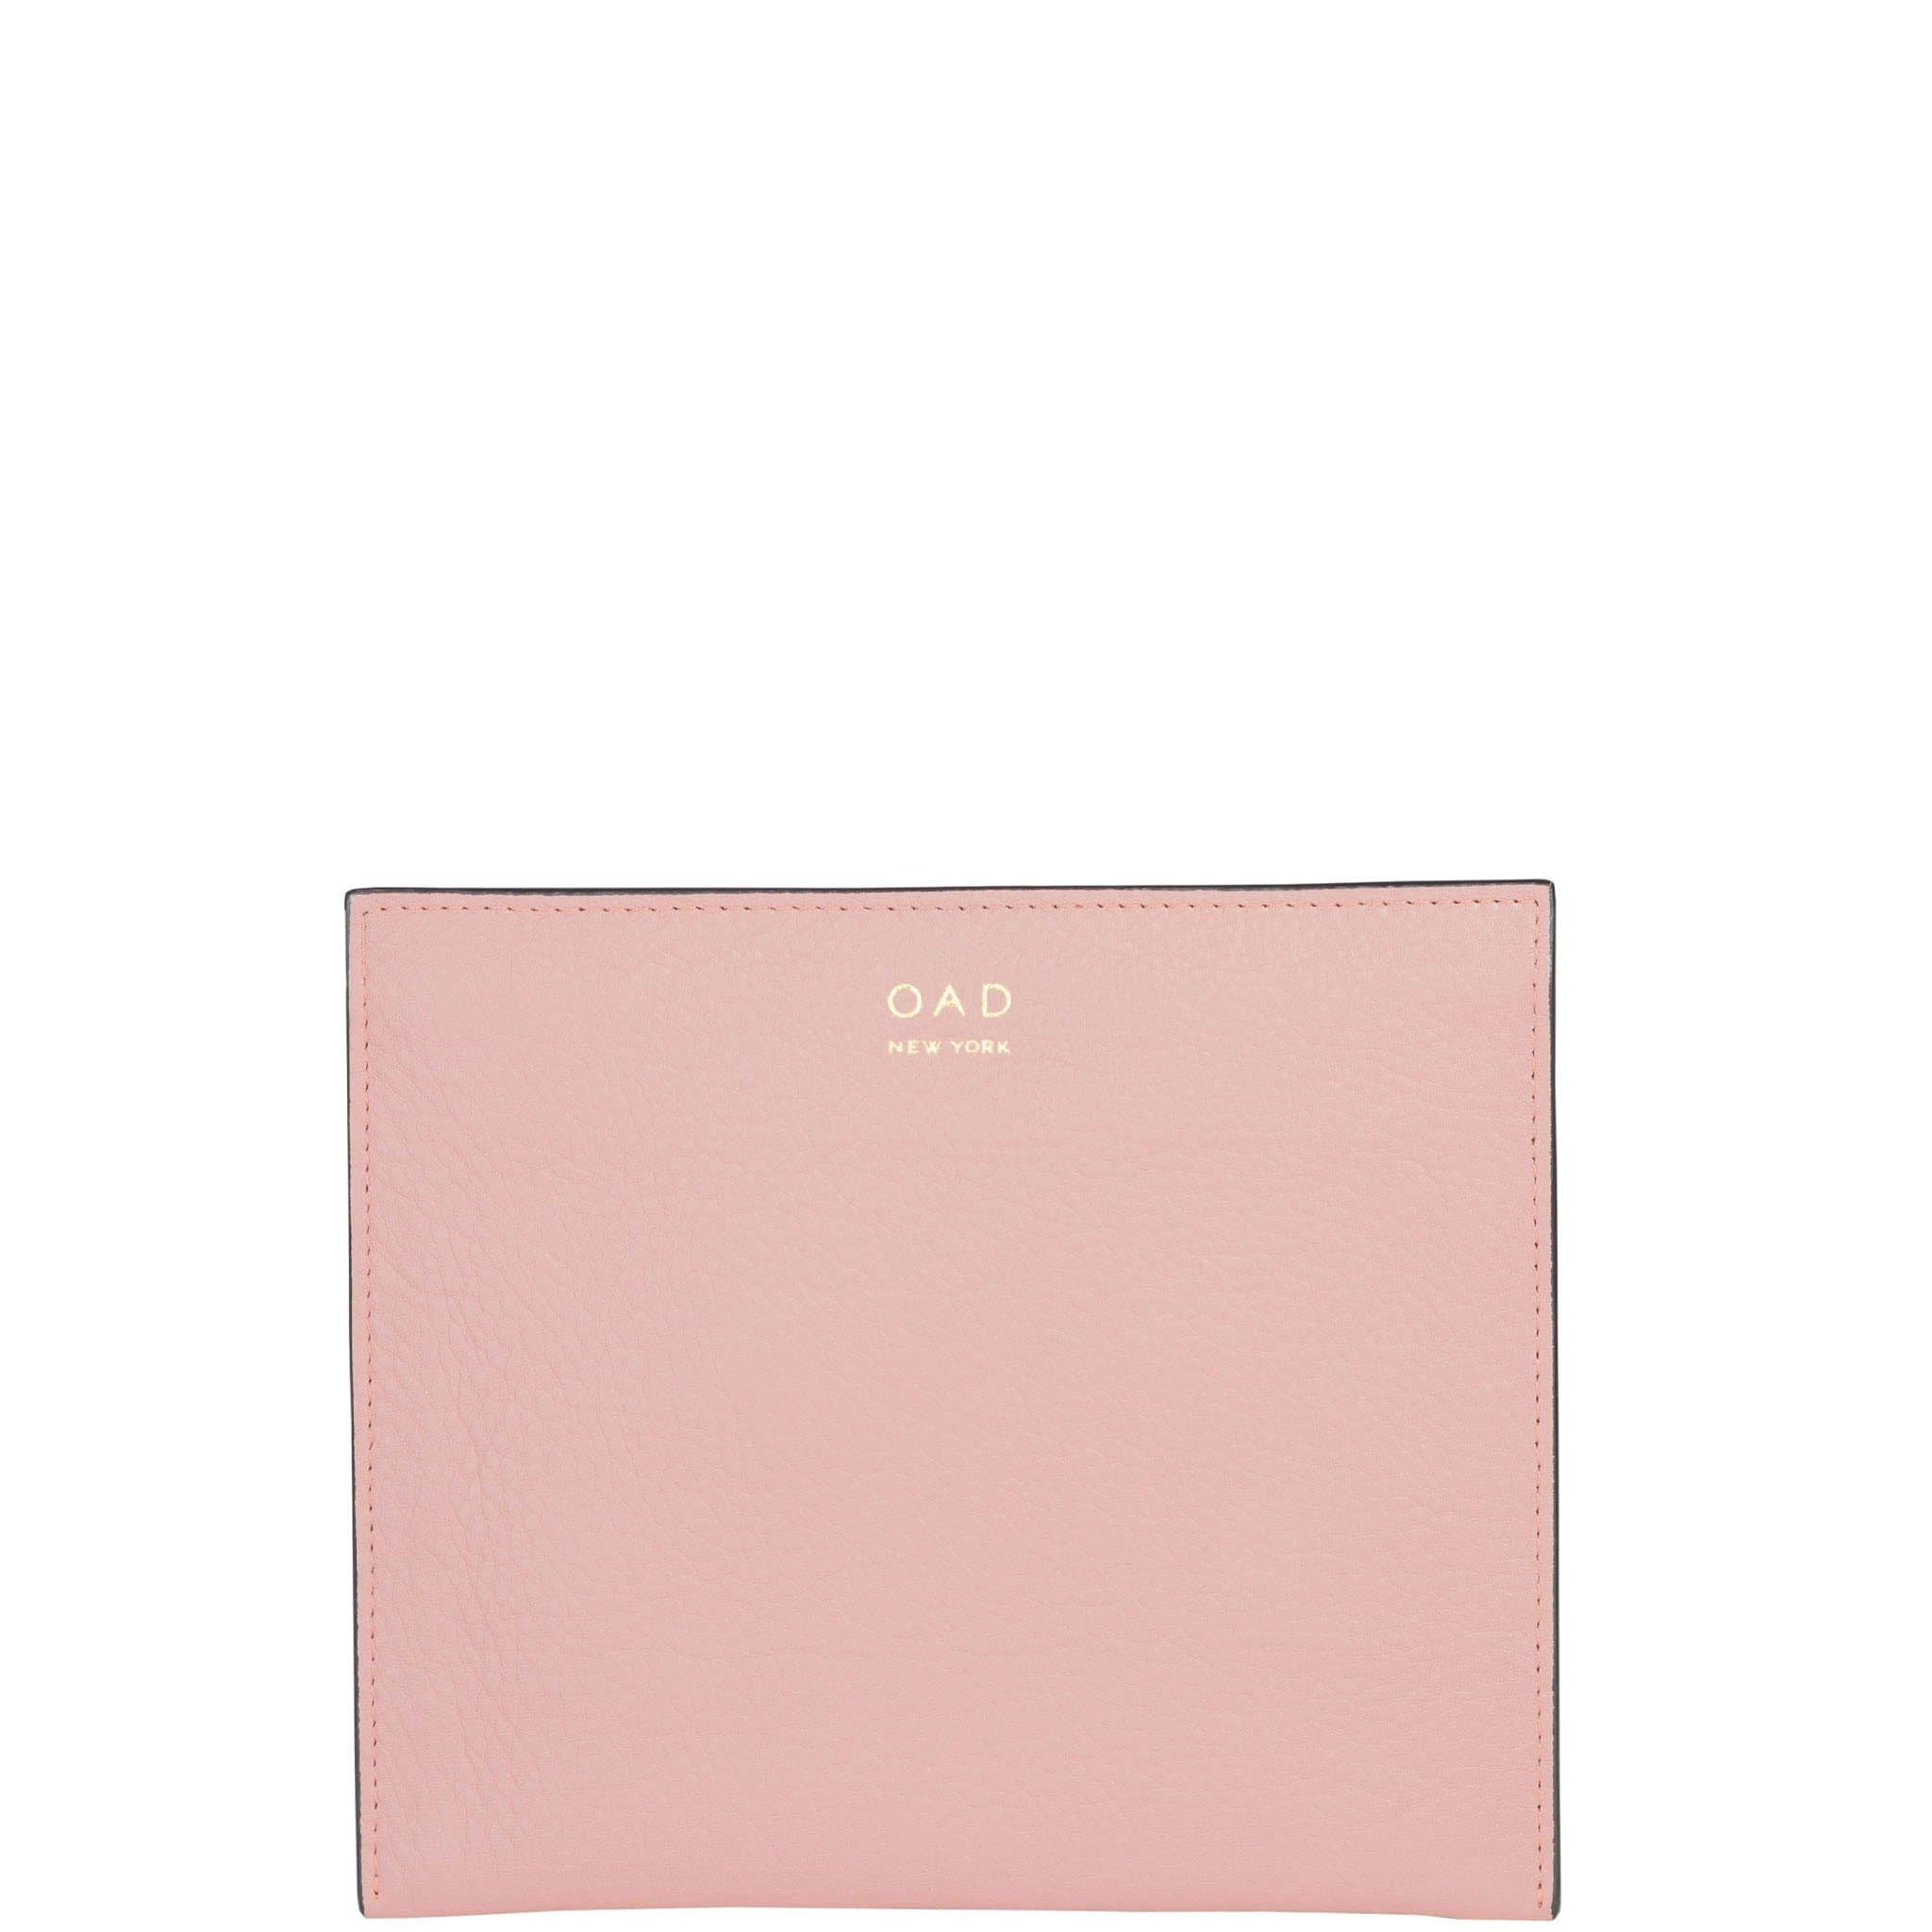 Dual Slim - Rose Pink - OAD NEW YORK - 1